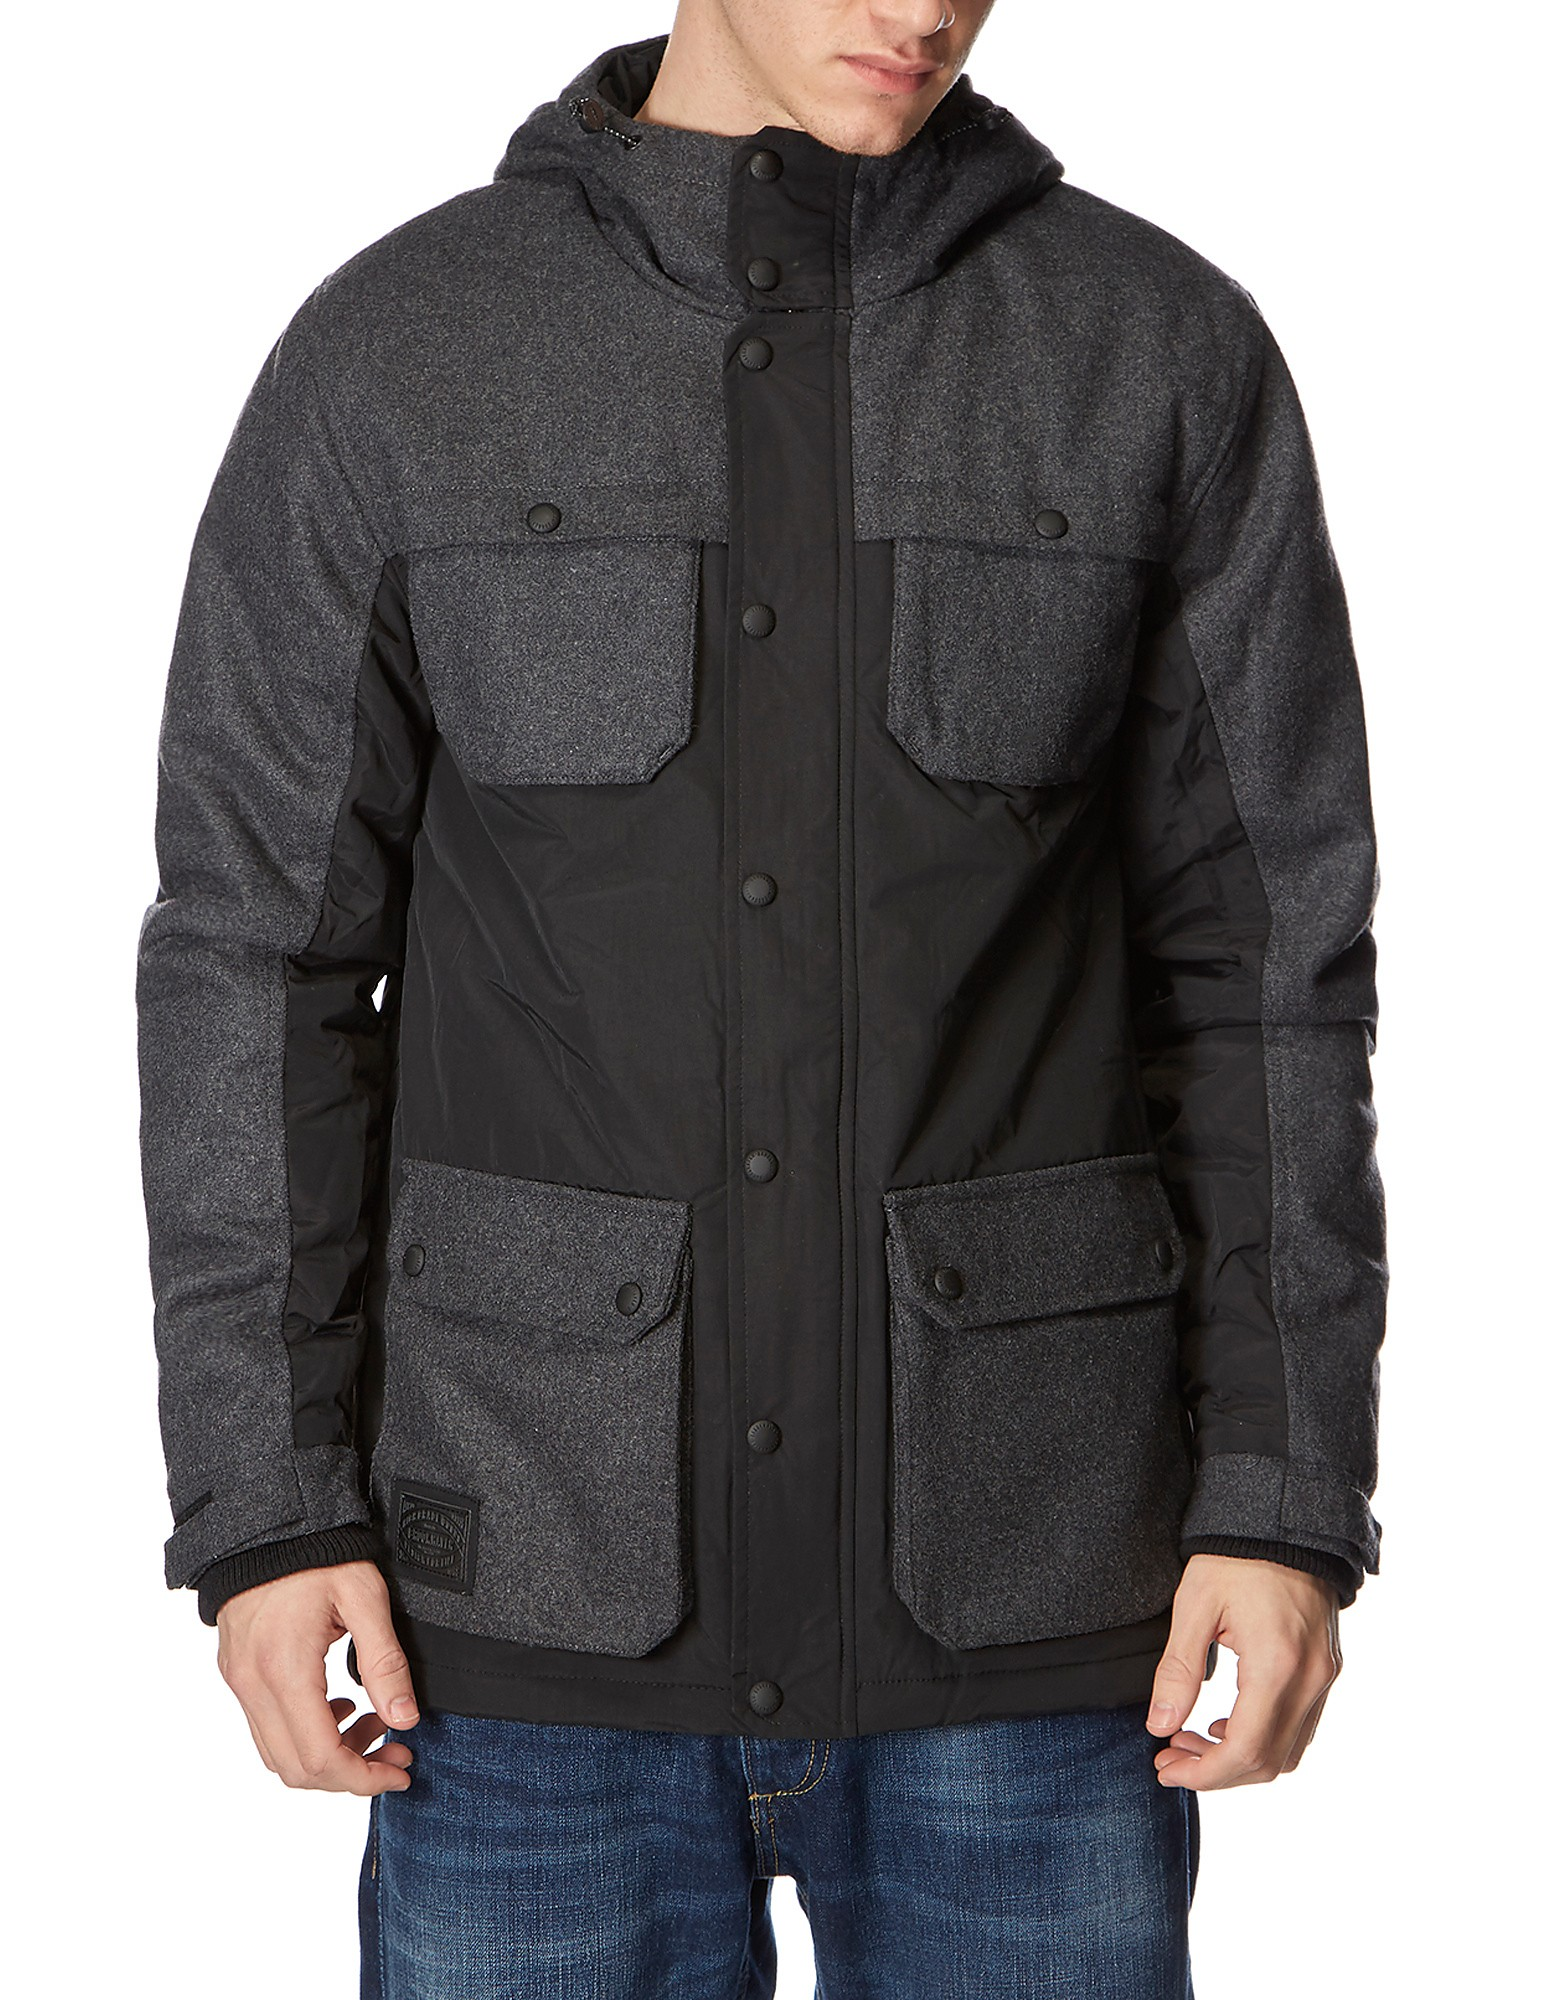 Brookhaven Gatton Jacket